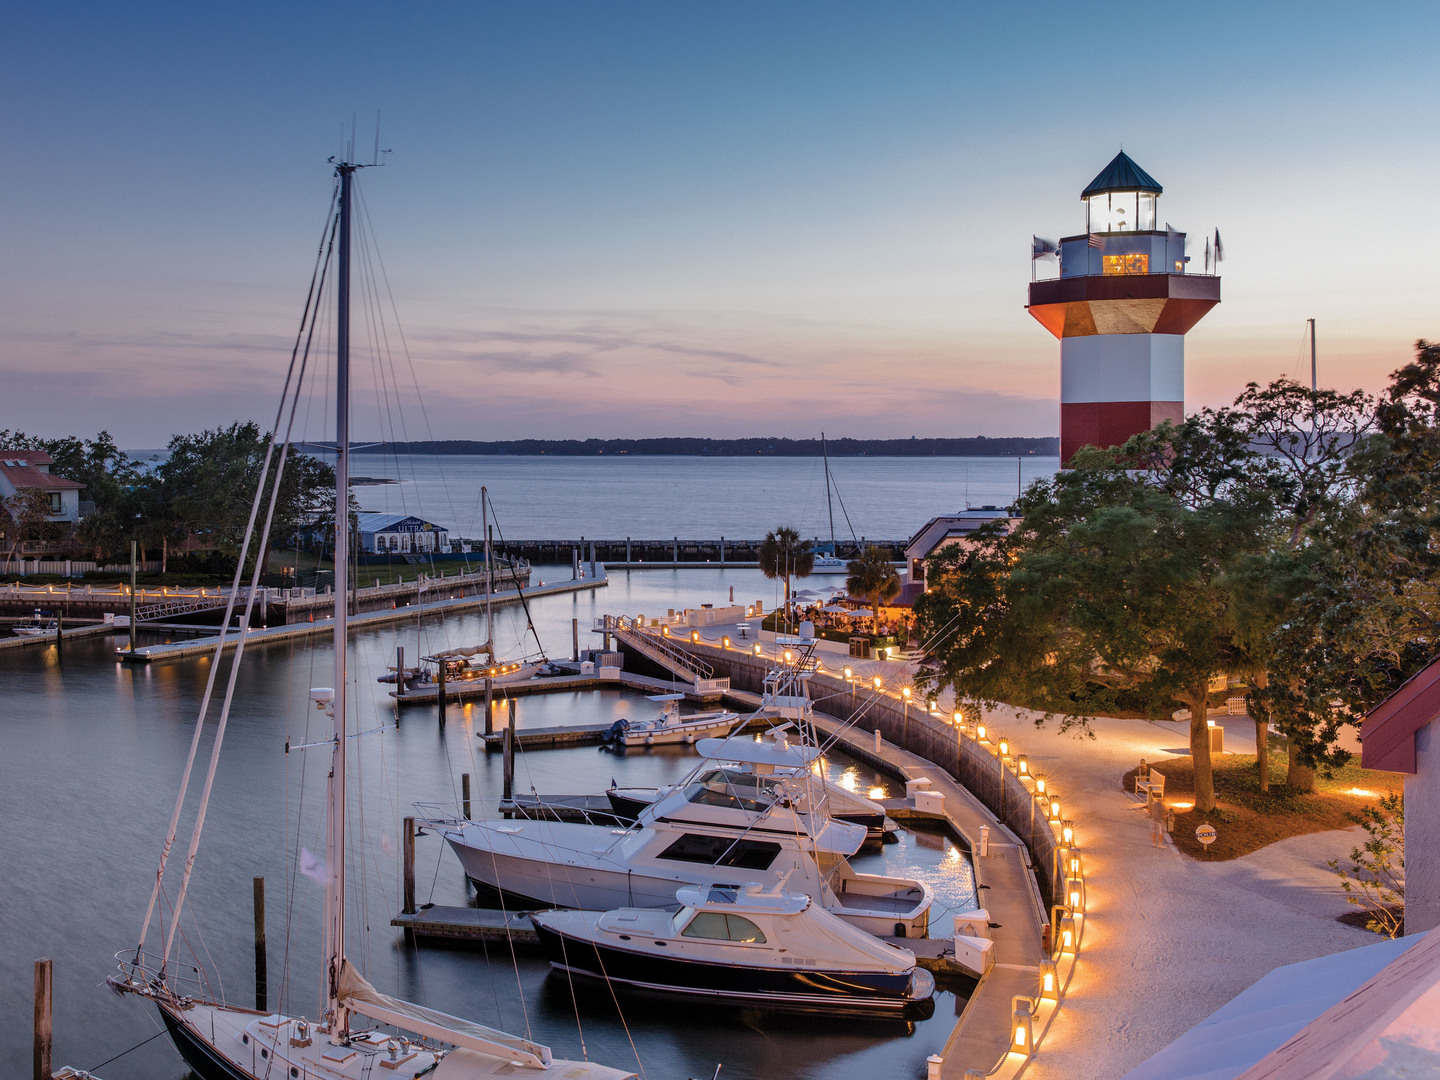 Marriott's Monarch Harbour Town Light House. Marriott's Monarch is located in Hilton Head Island, South Carolina United States.